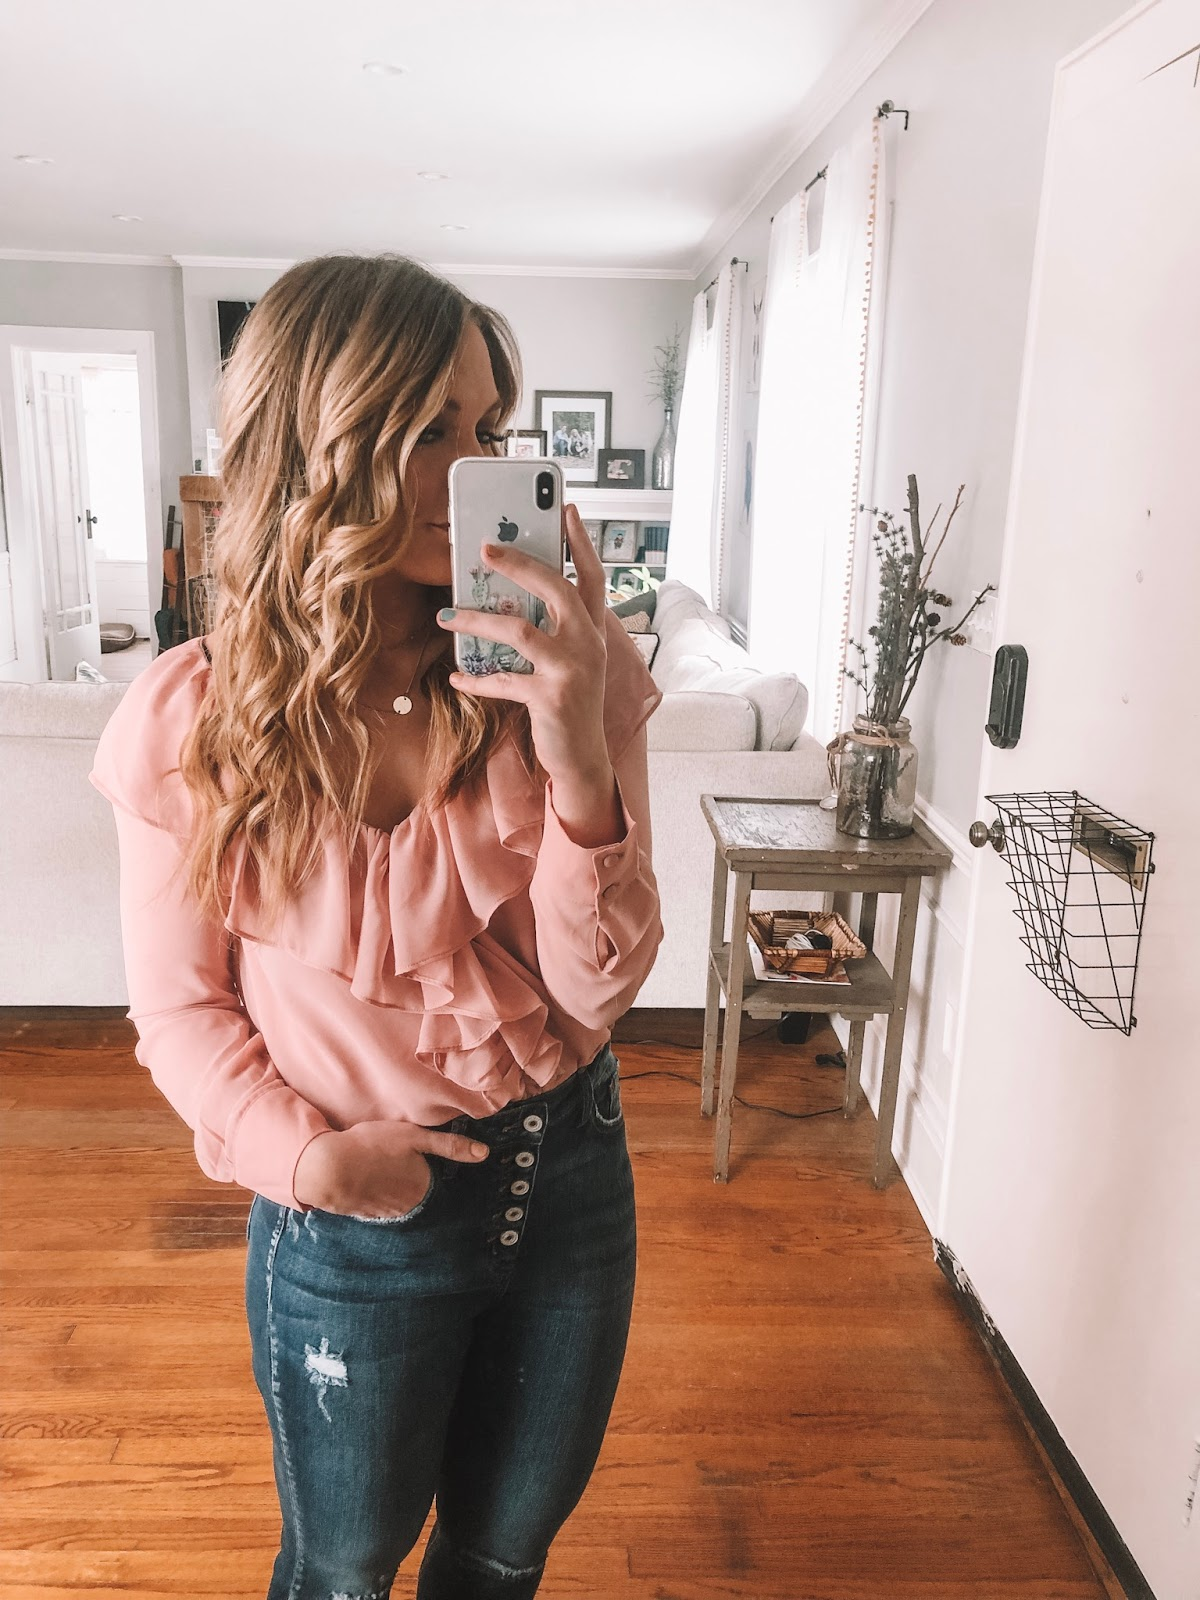 T3 Tapered Wand Review